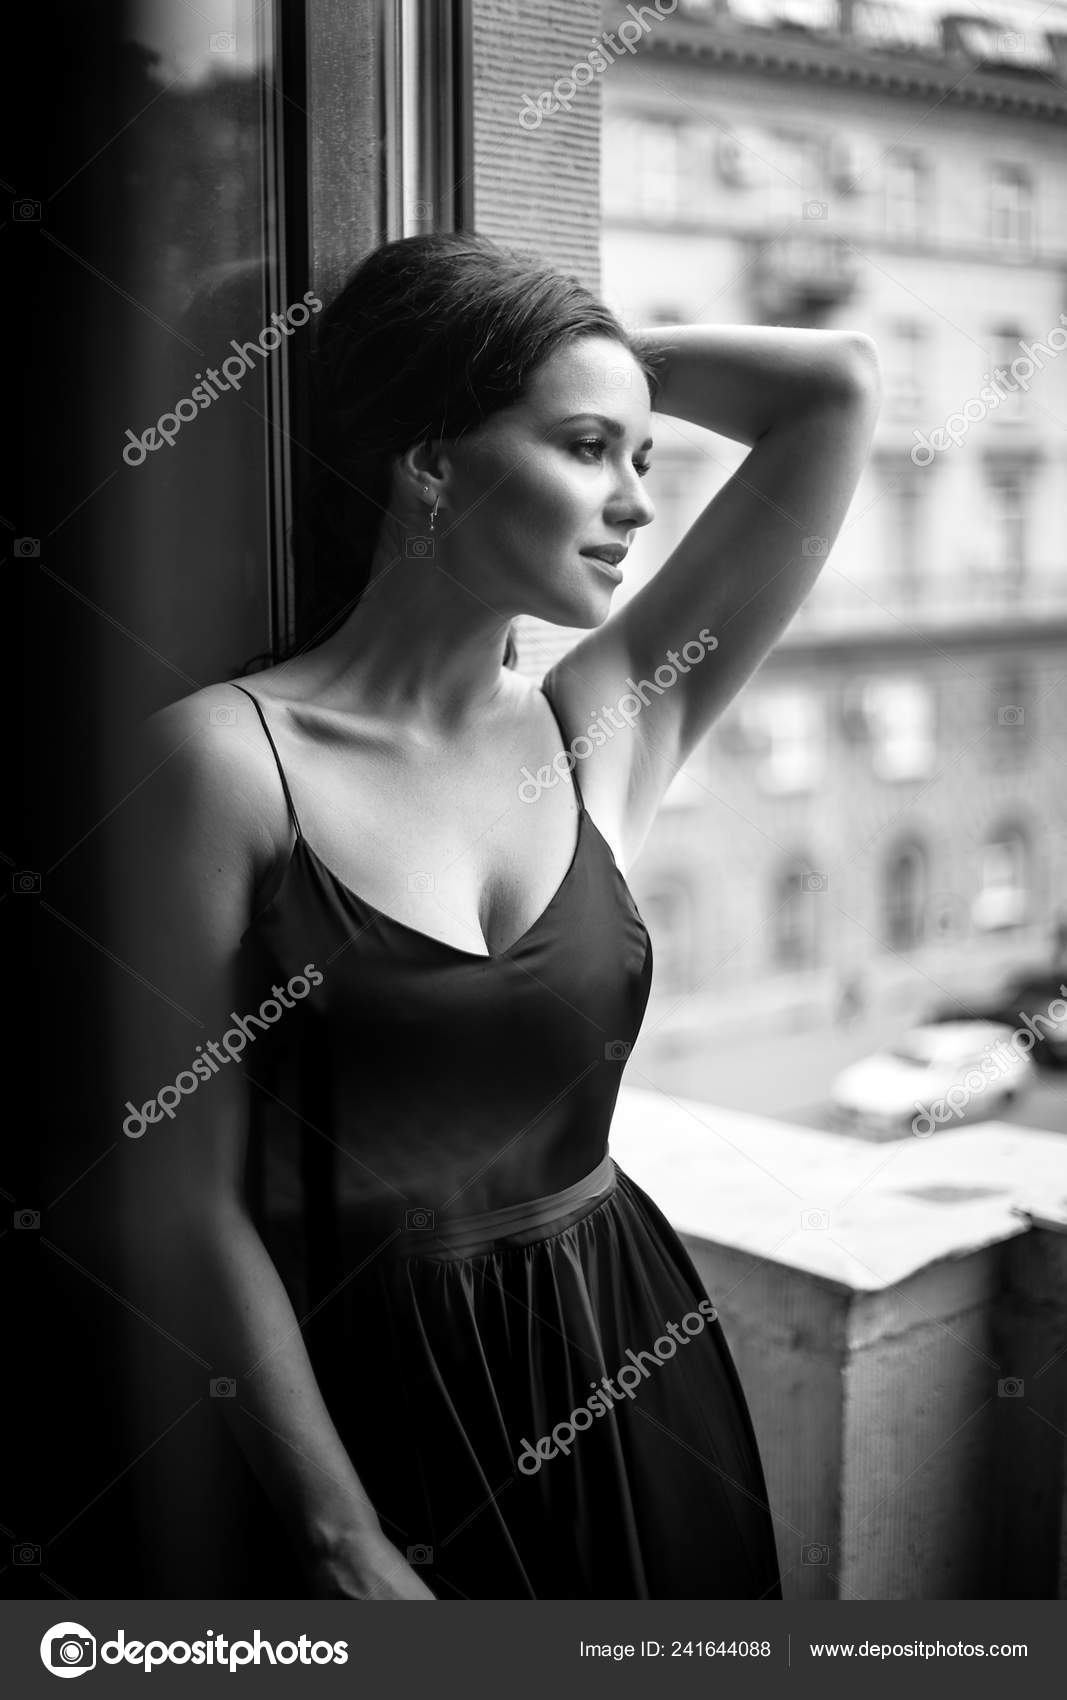 Black white portrait young woman elegant silk black dress lookingto